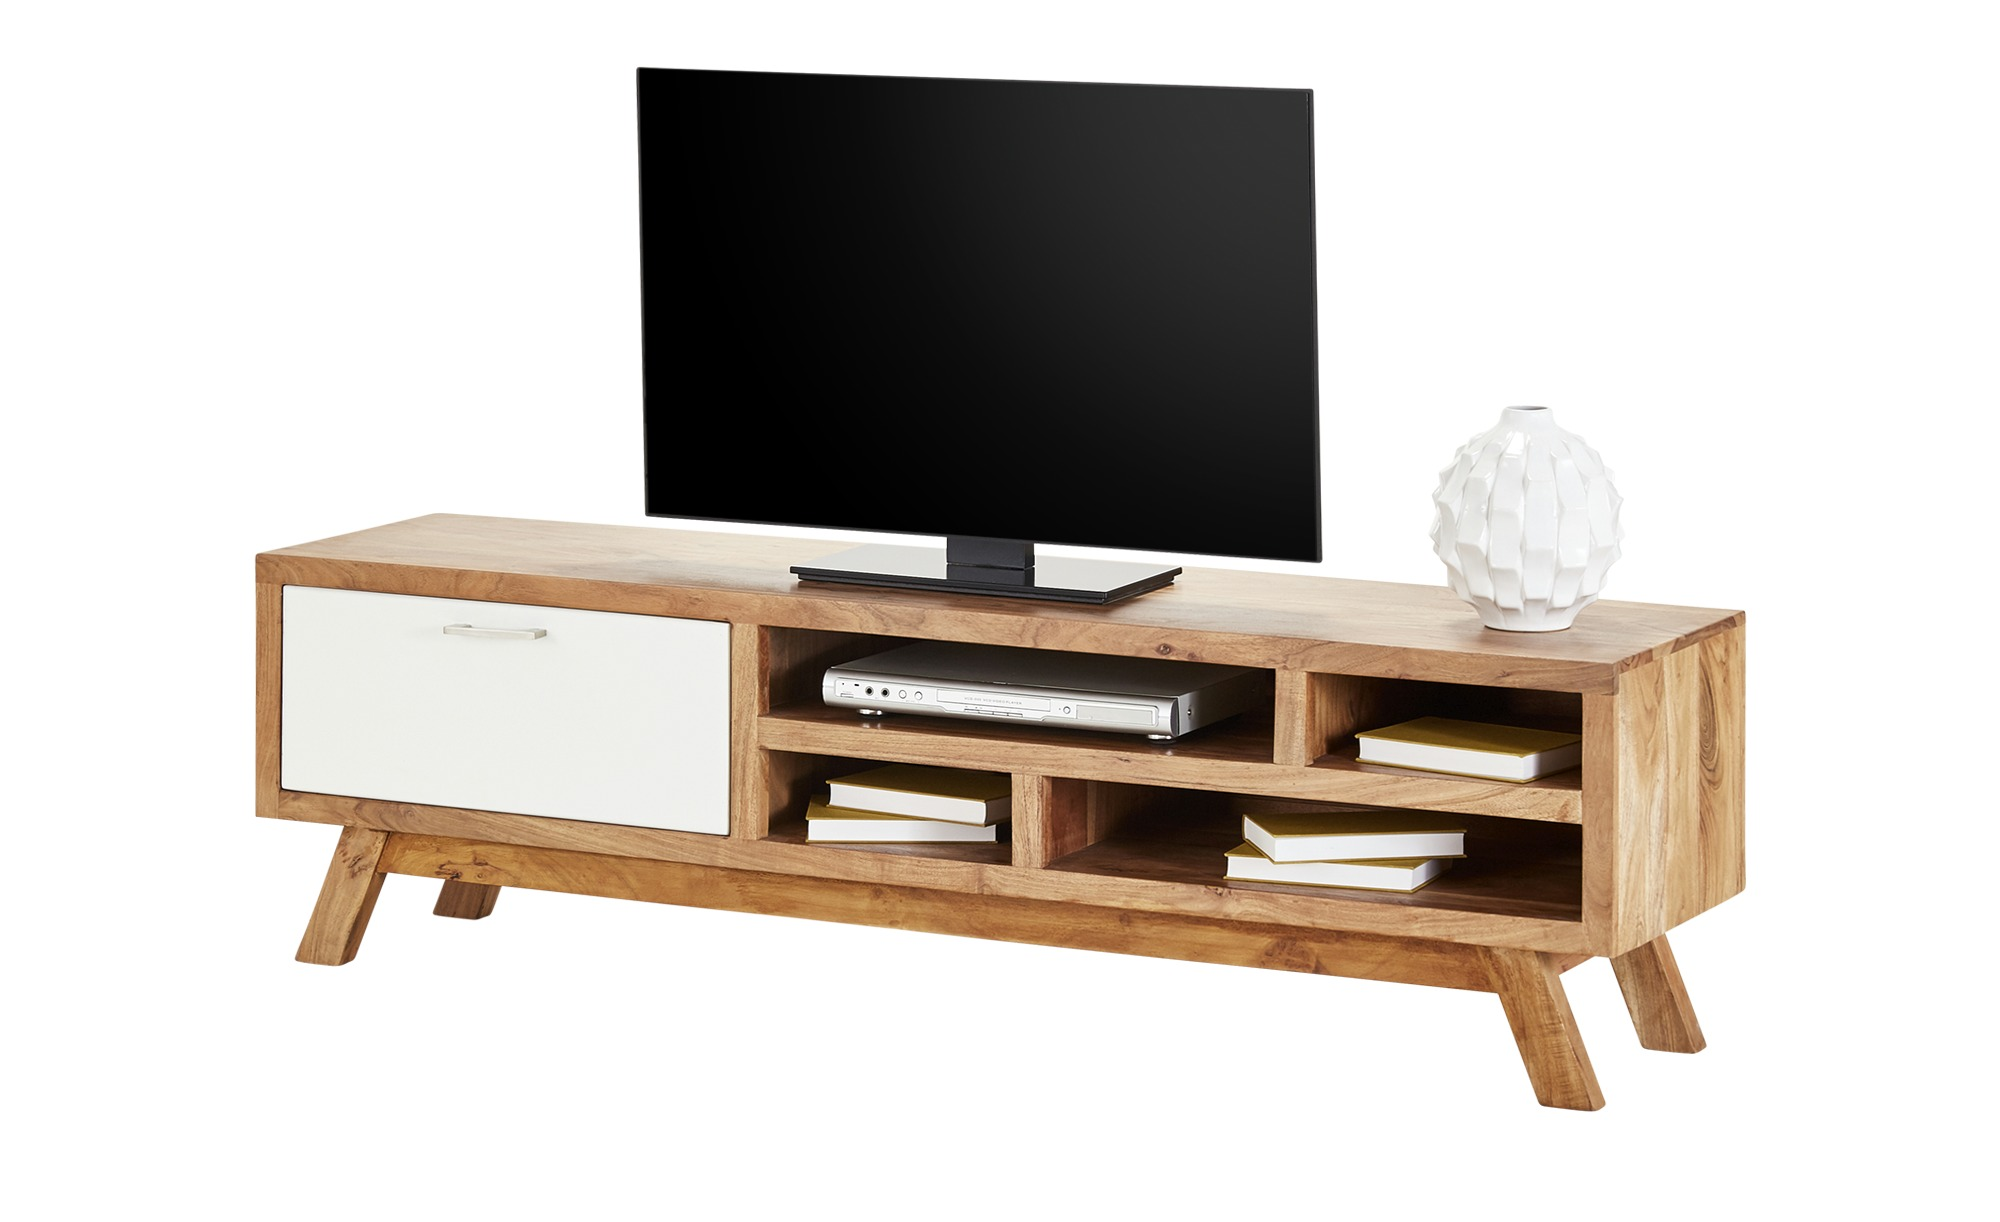 woodford tv lowboard washington breite 170 cm h he 50 cm. Black Bedroom Furniture Sets. Home Design Ideas